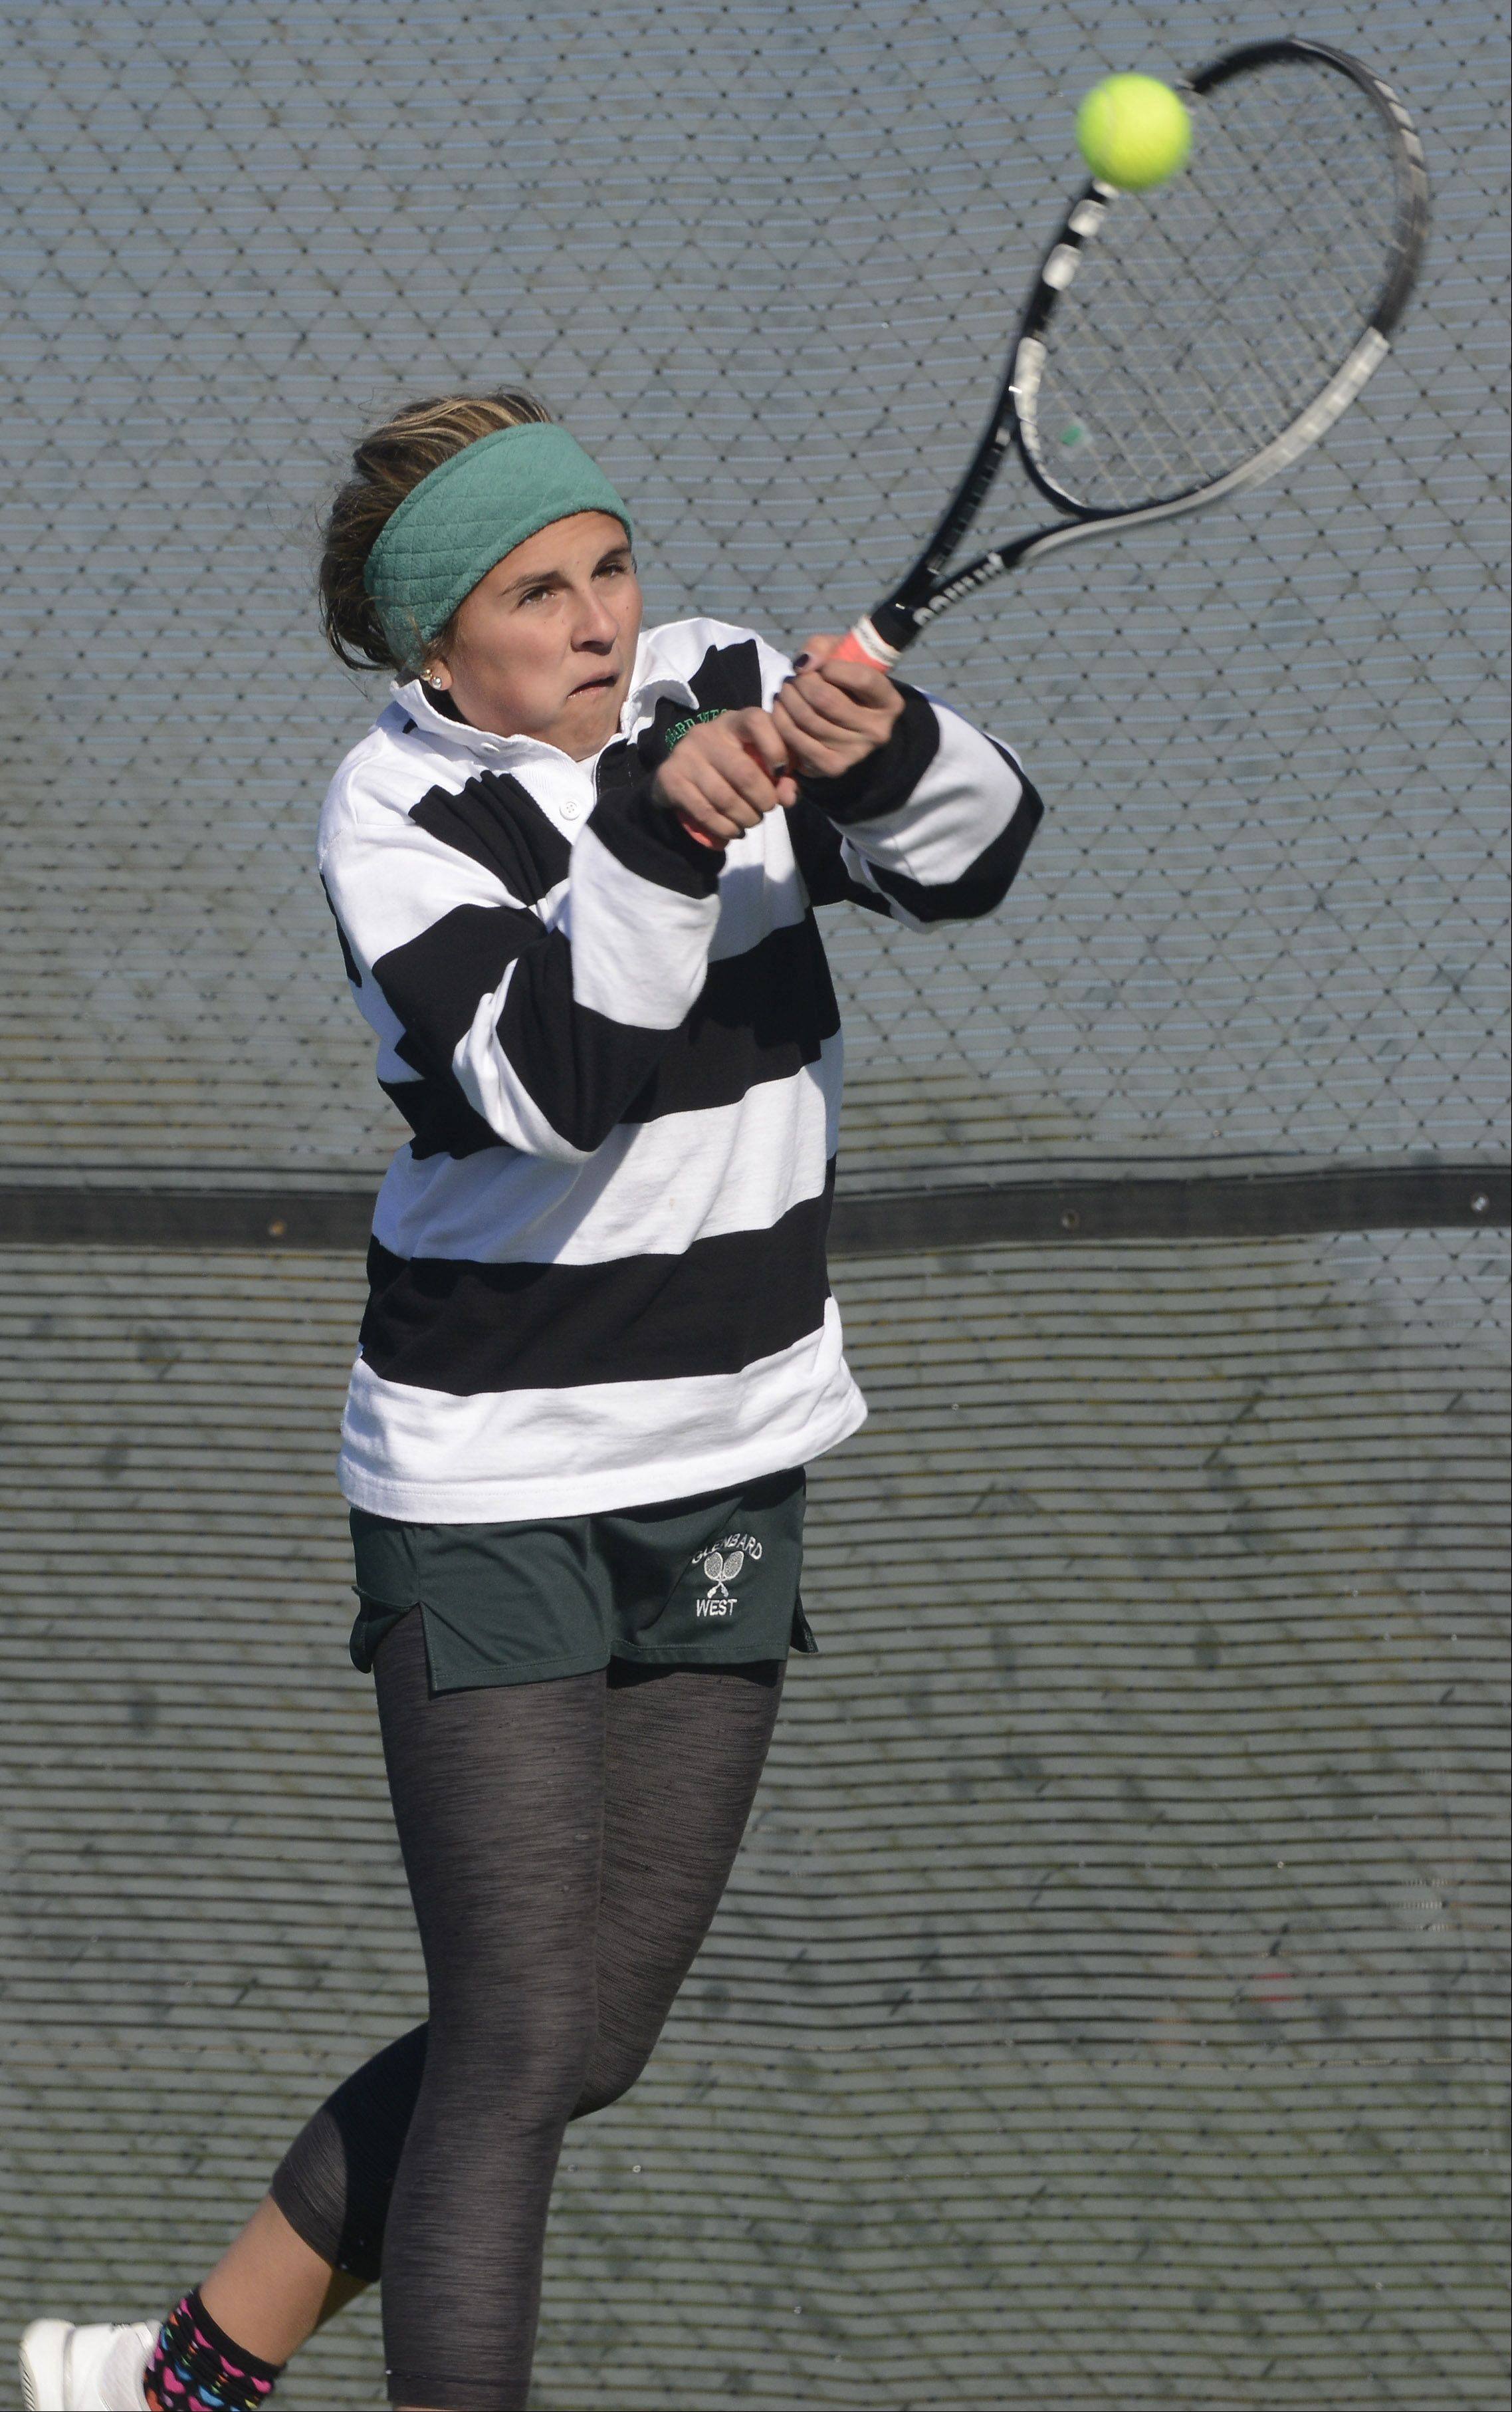 Glenbard West's Maggie Hughes returns a smash during the girls state tennis preliminaries at Prospect High School Thursday.